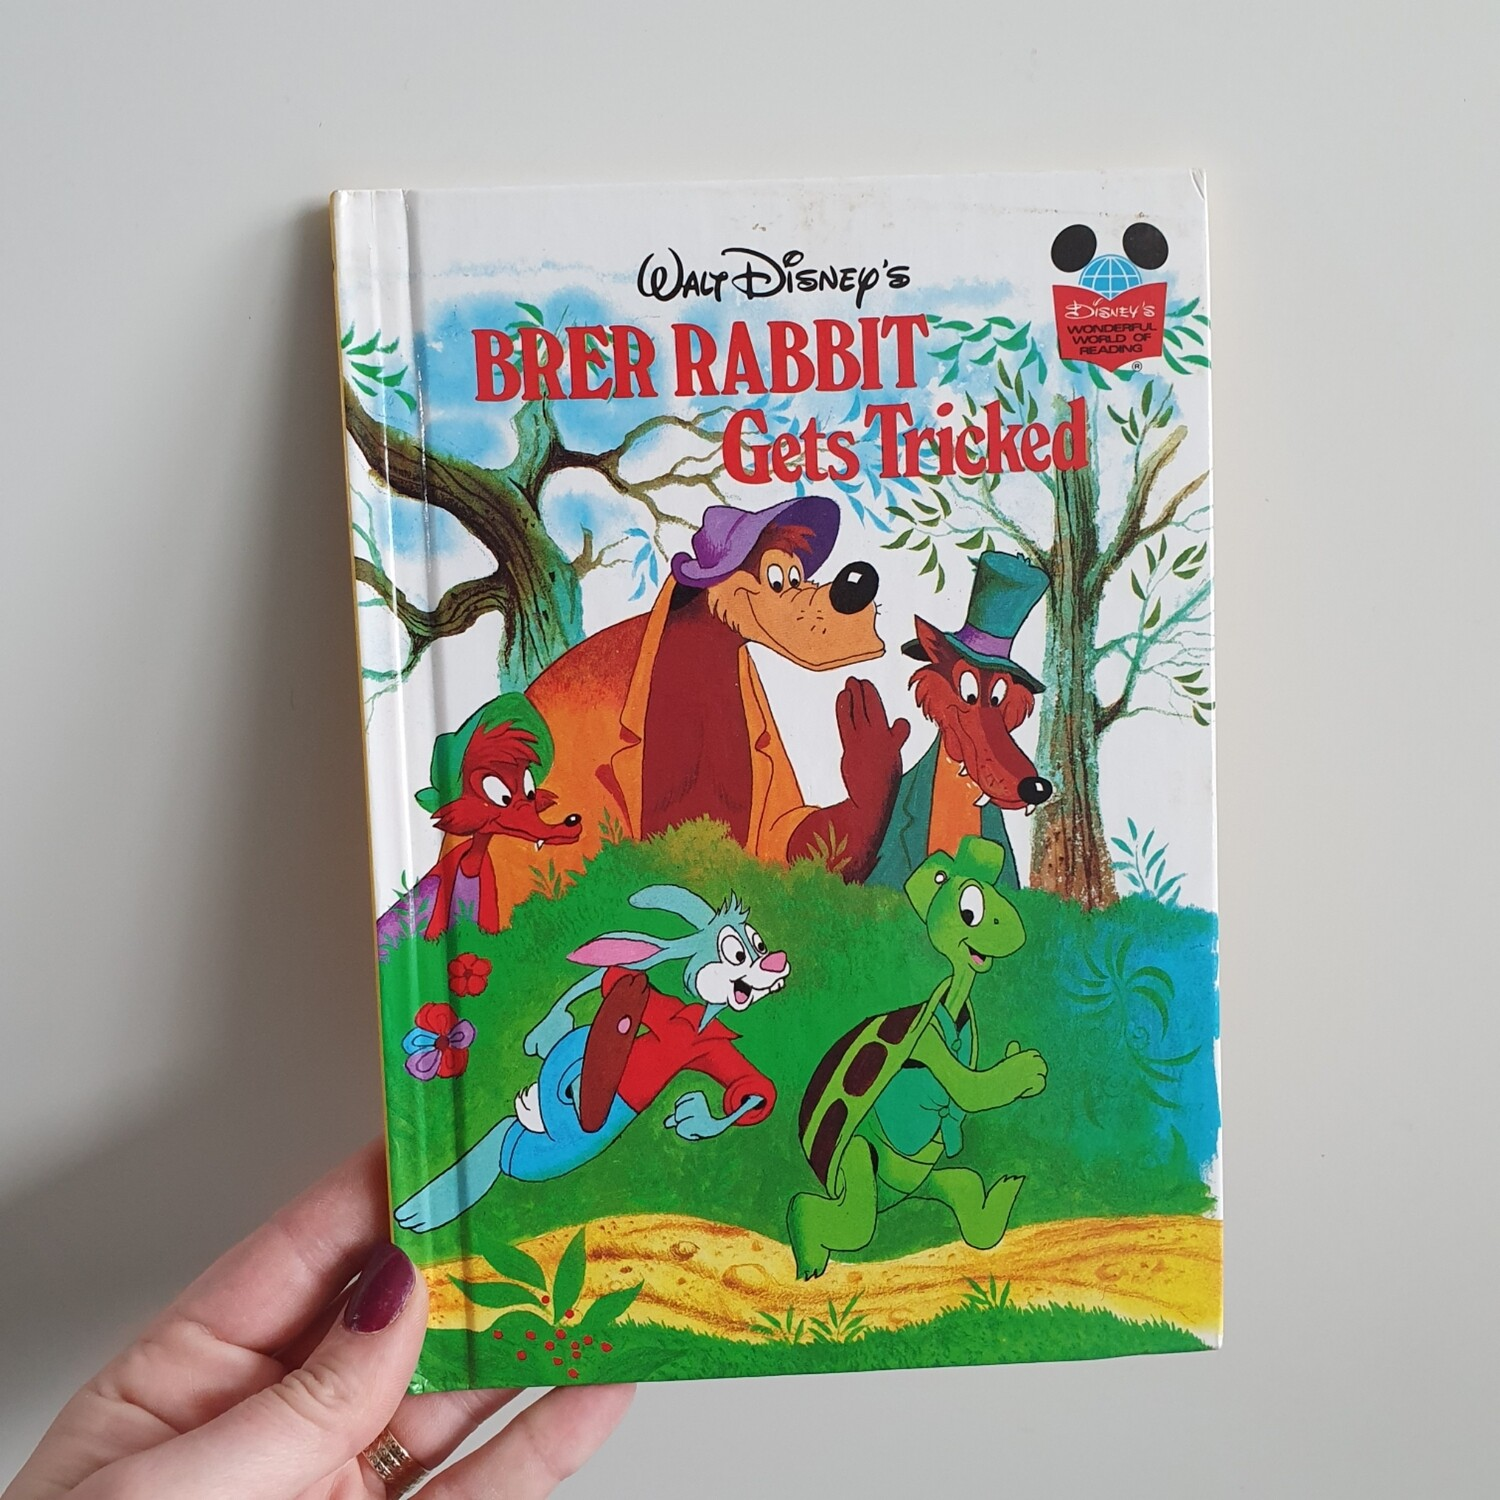 Brer Rabbit Notebook - Gets Tricked  - from Song of the South